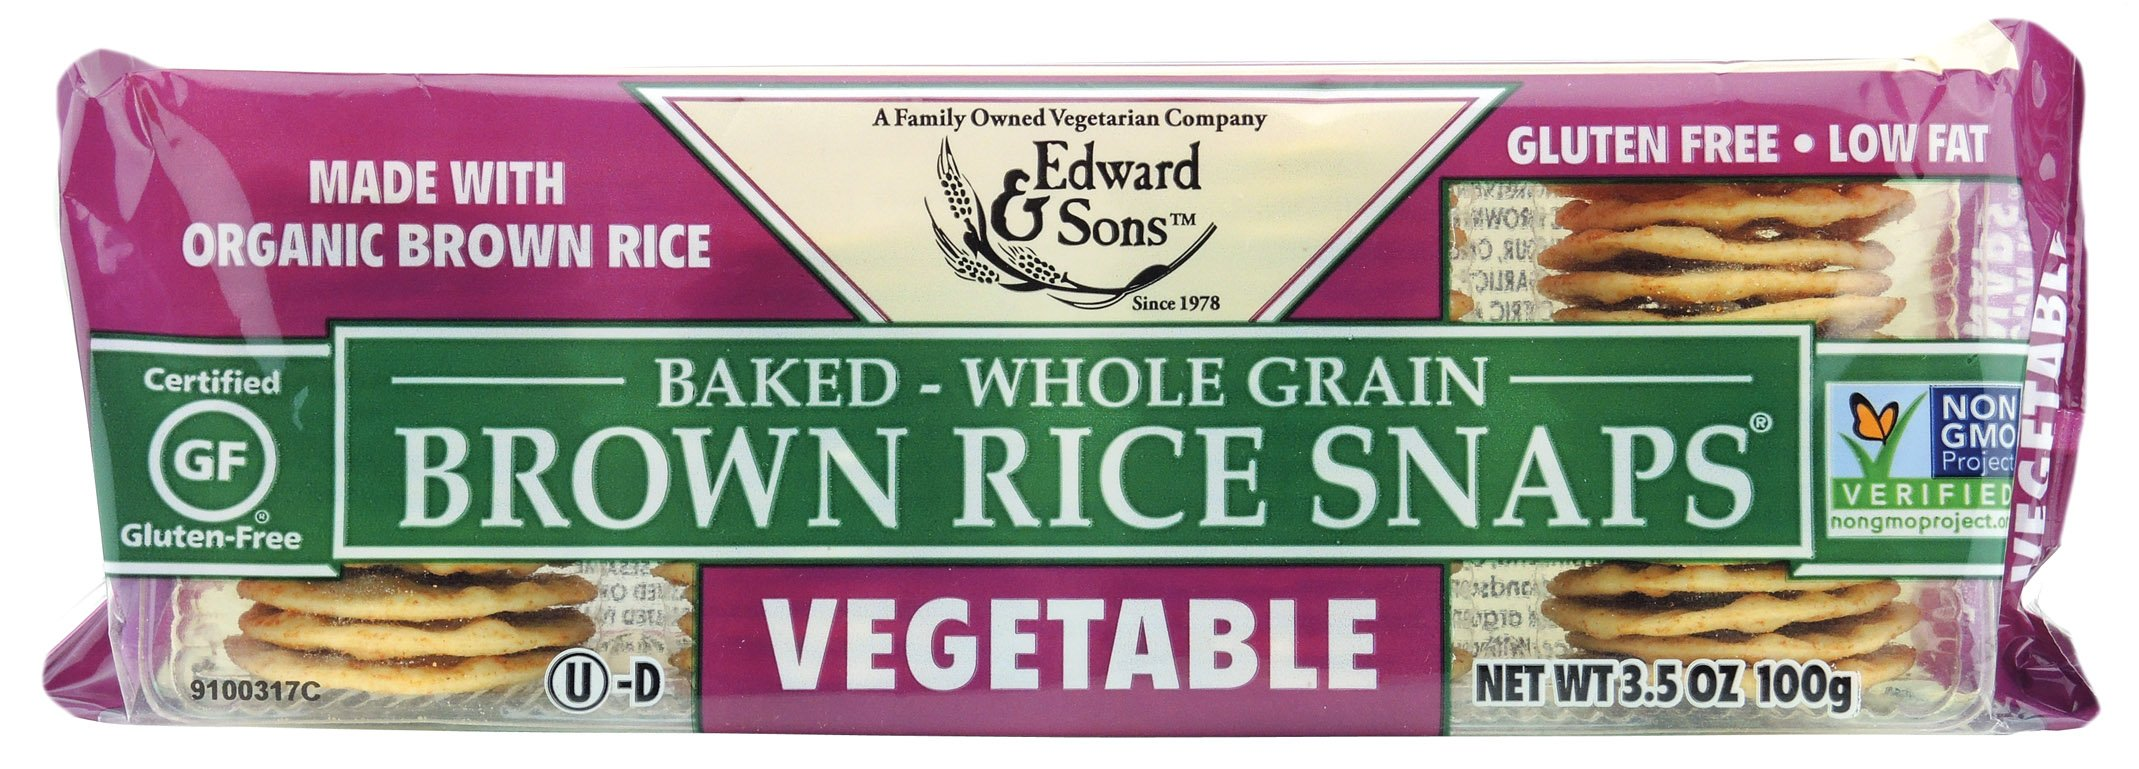 Edward & Sons Brown Rice Snaps Vegetable with Organic Brown Rice, 3.5 Ounce Packs (Pack of 12) by Edward & Sons